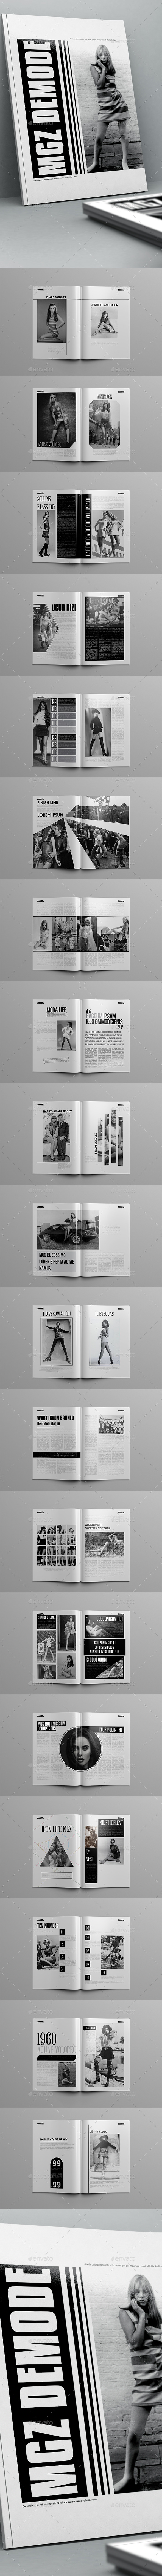 Demode Magazine Template 40 Pages - Magazines Print Templates